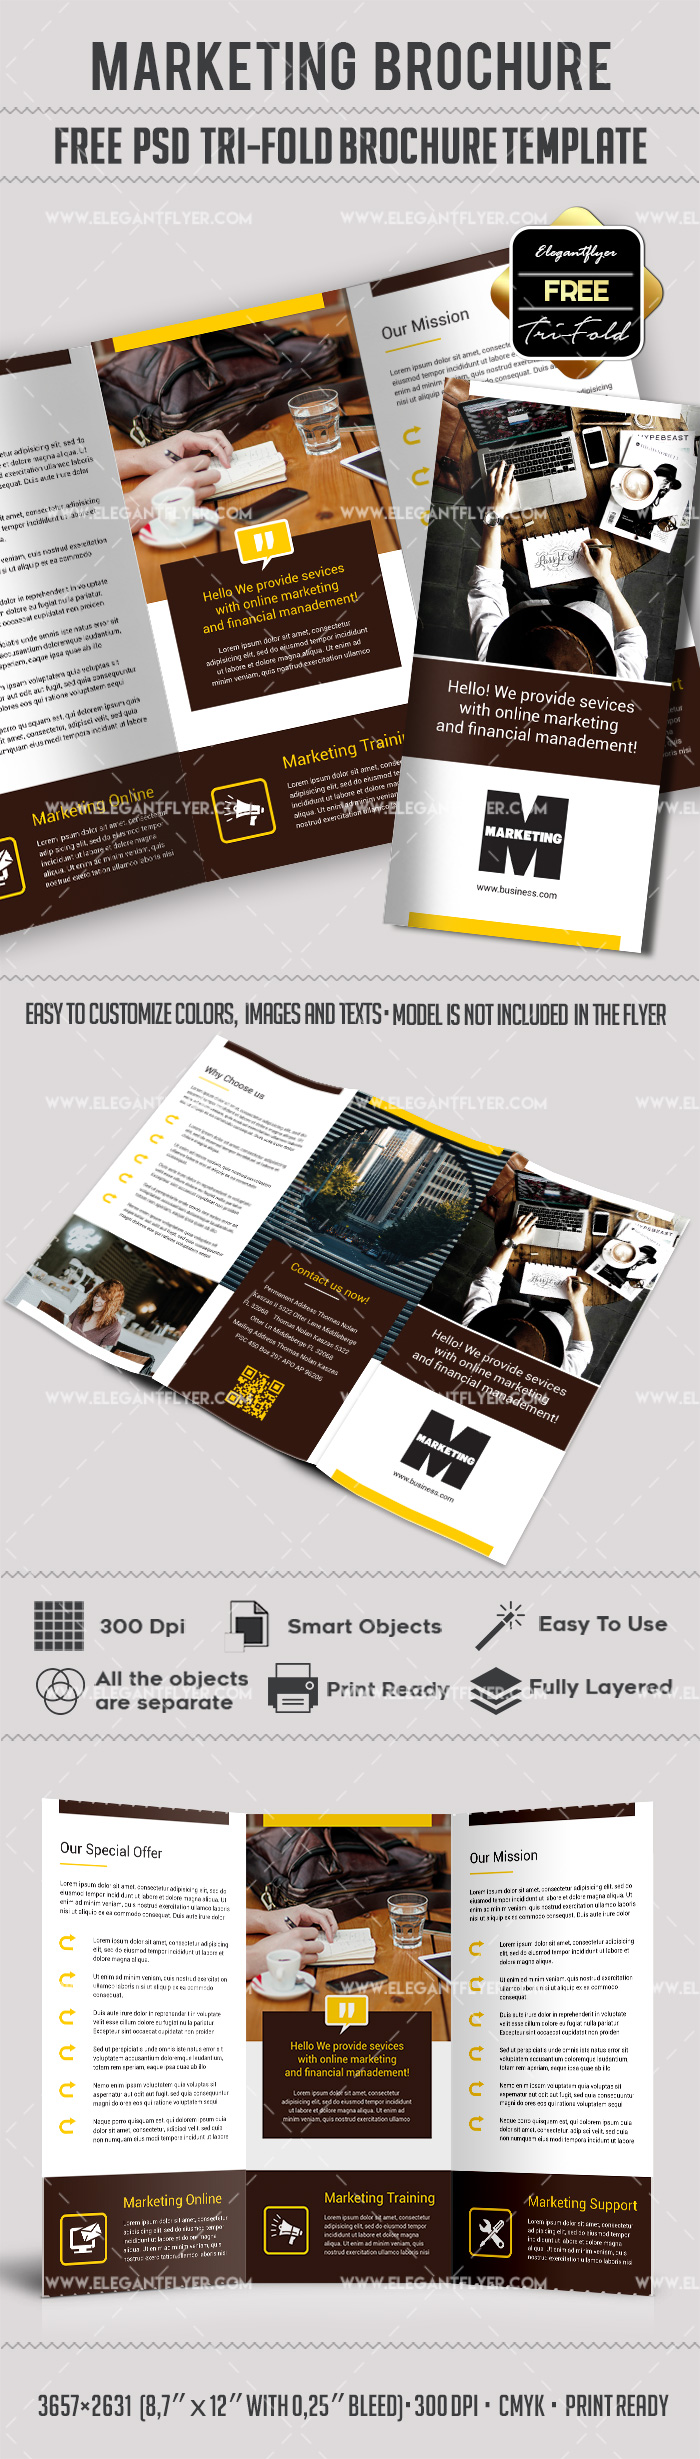 Marketing free tri fold psd brochure template by for Brochure photoshop templates